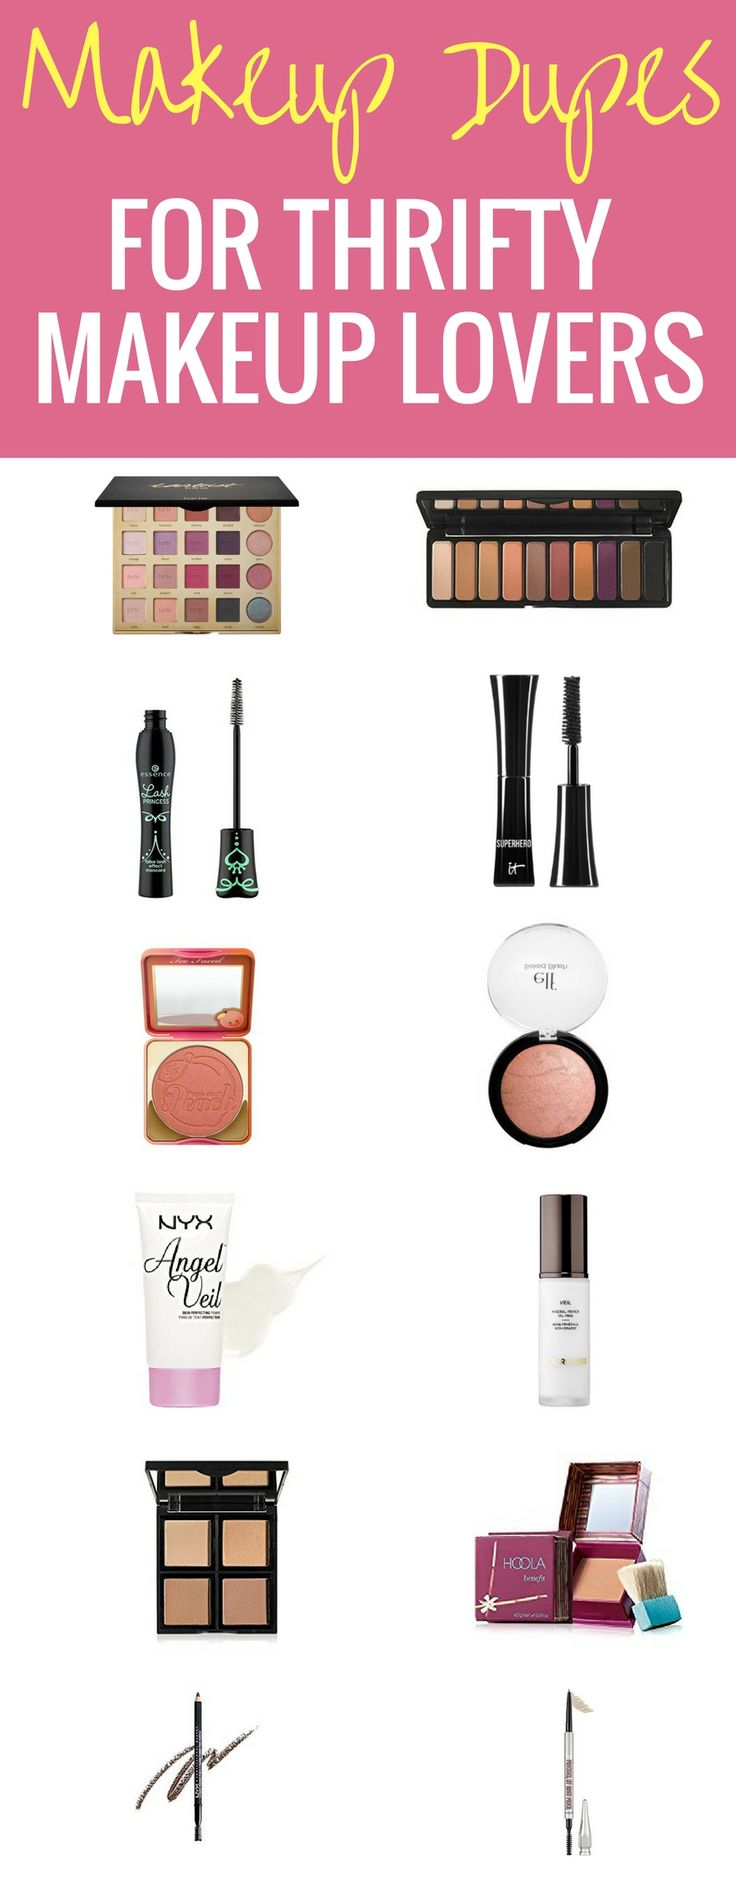 This is your ultimate list of makeup dupes for thrifty makeup lovers